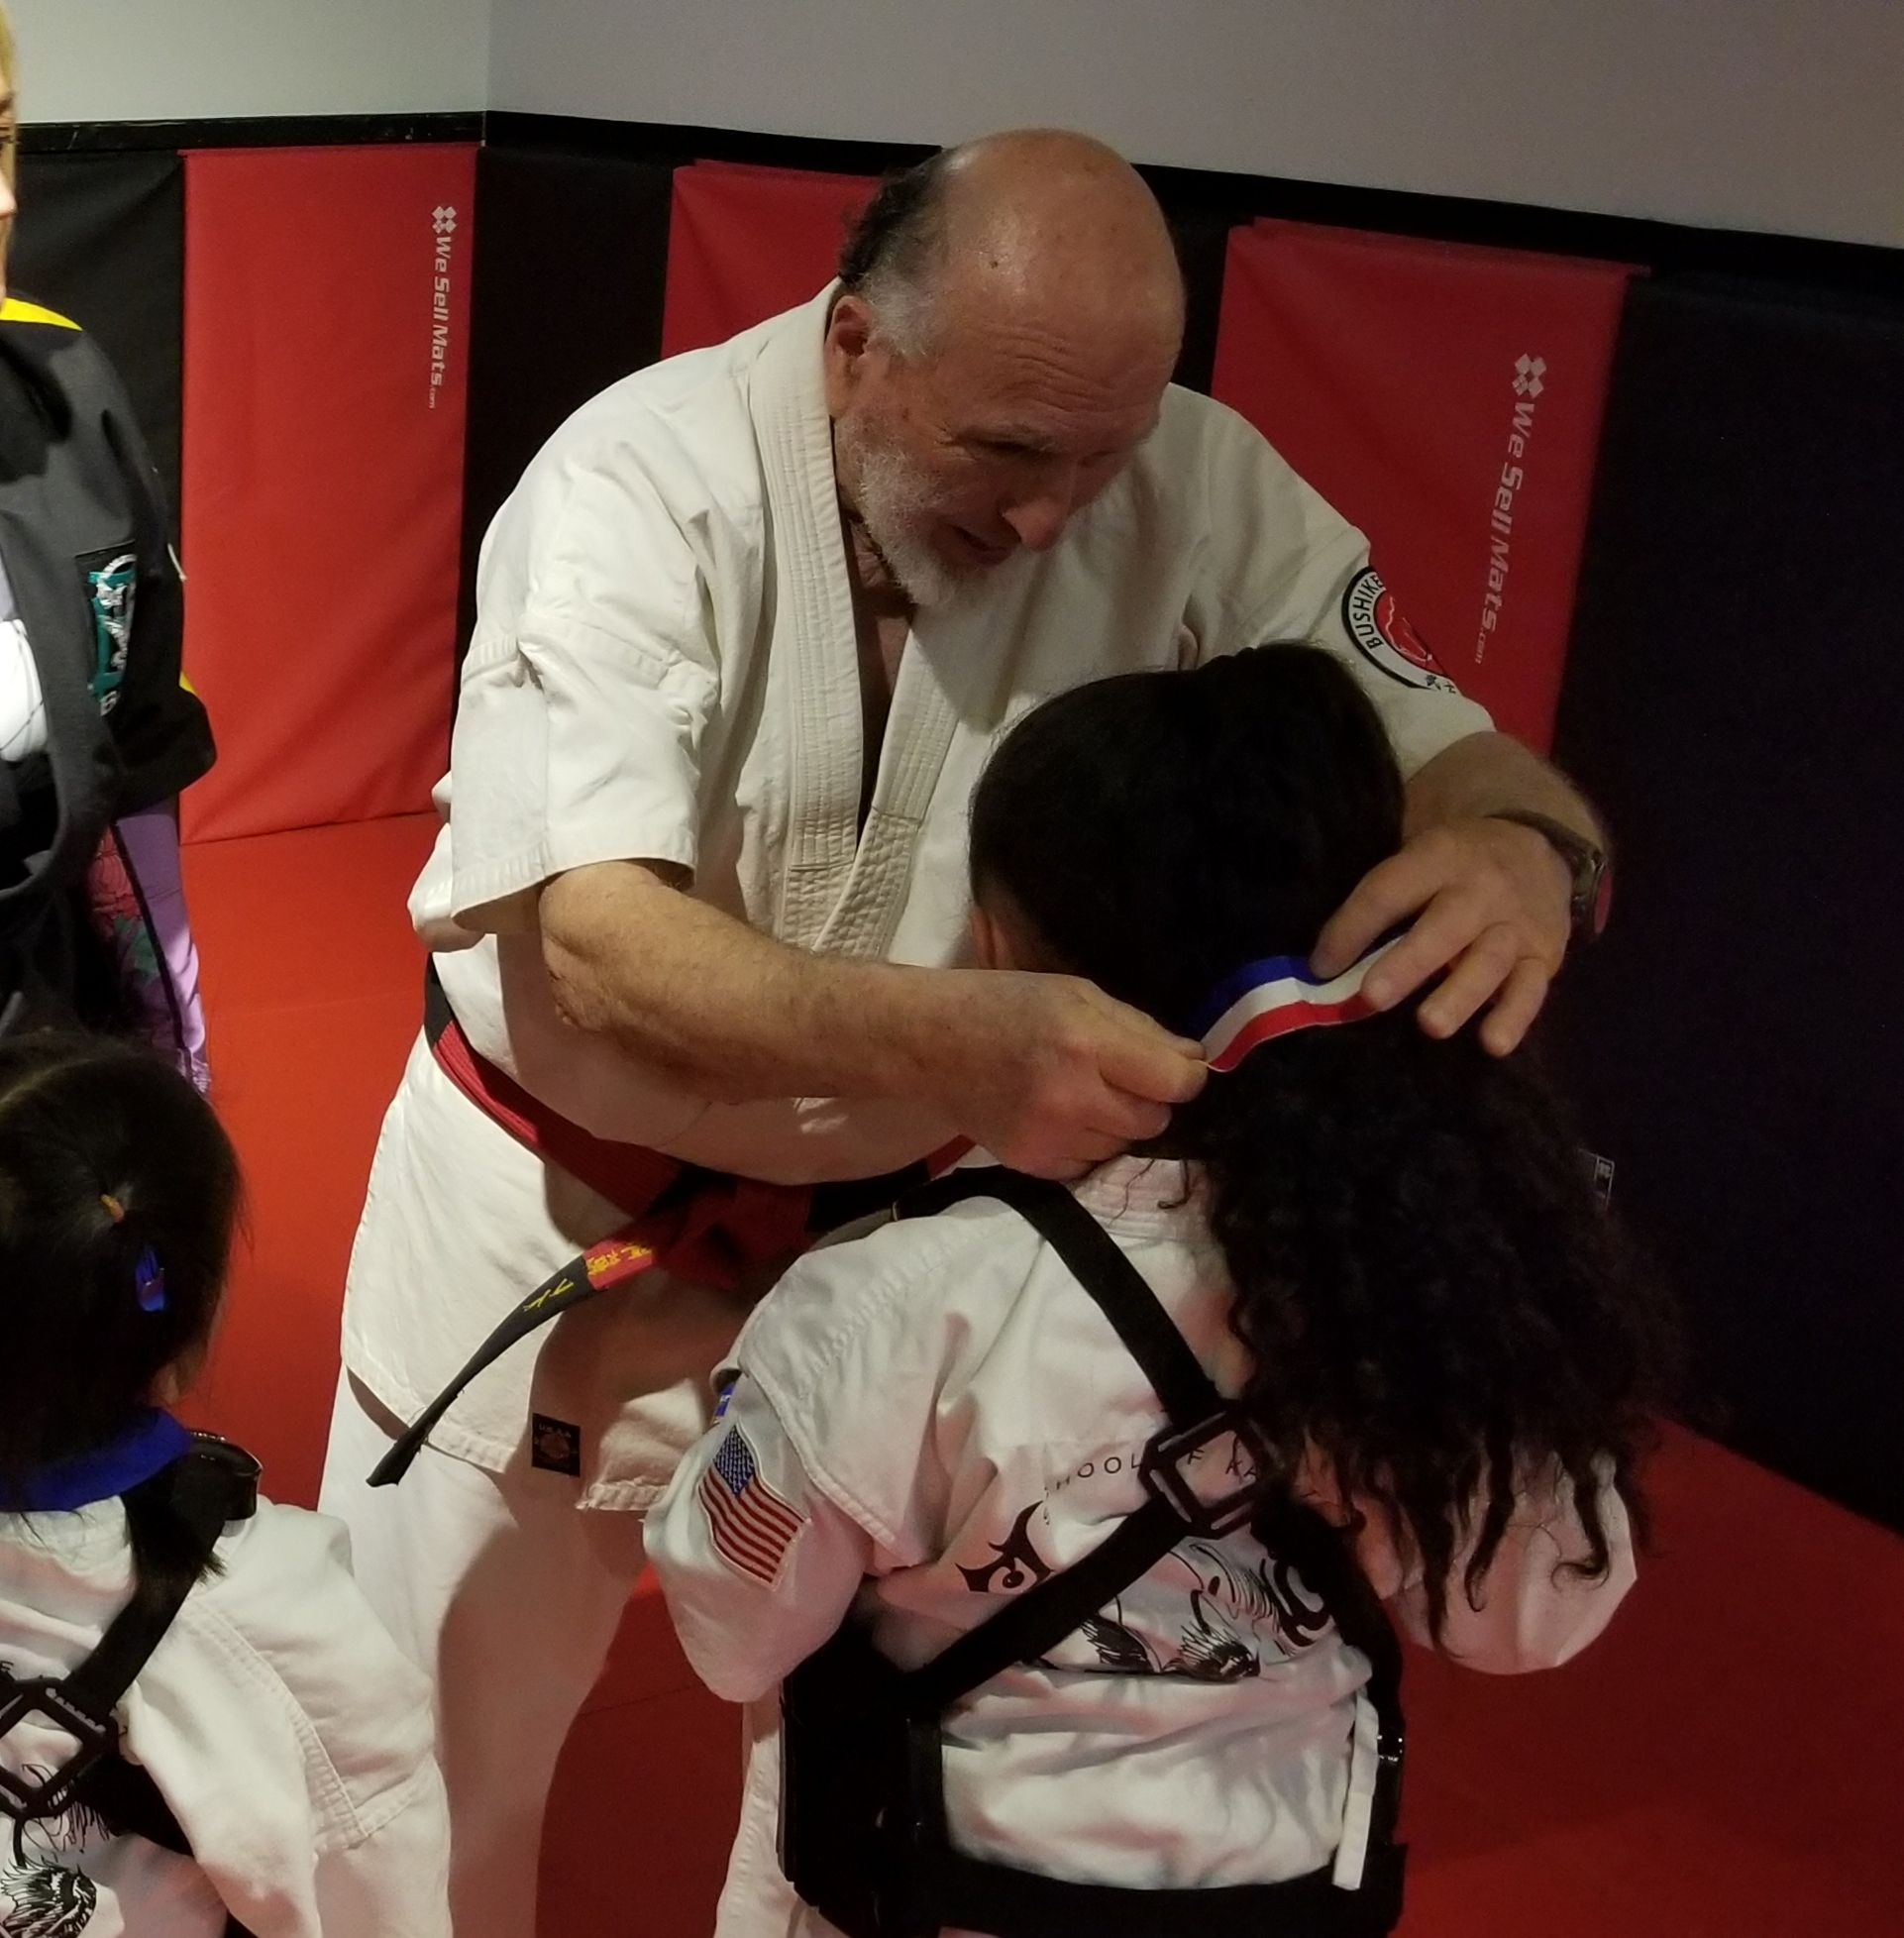 karate elder helps younger student